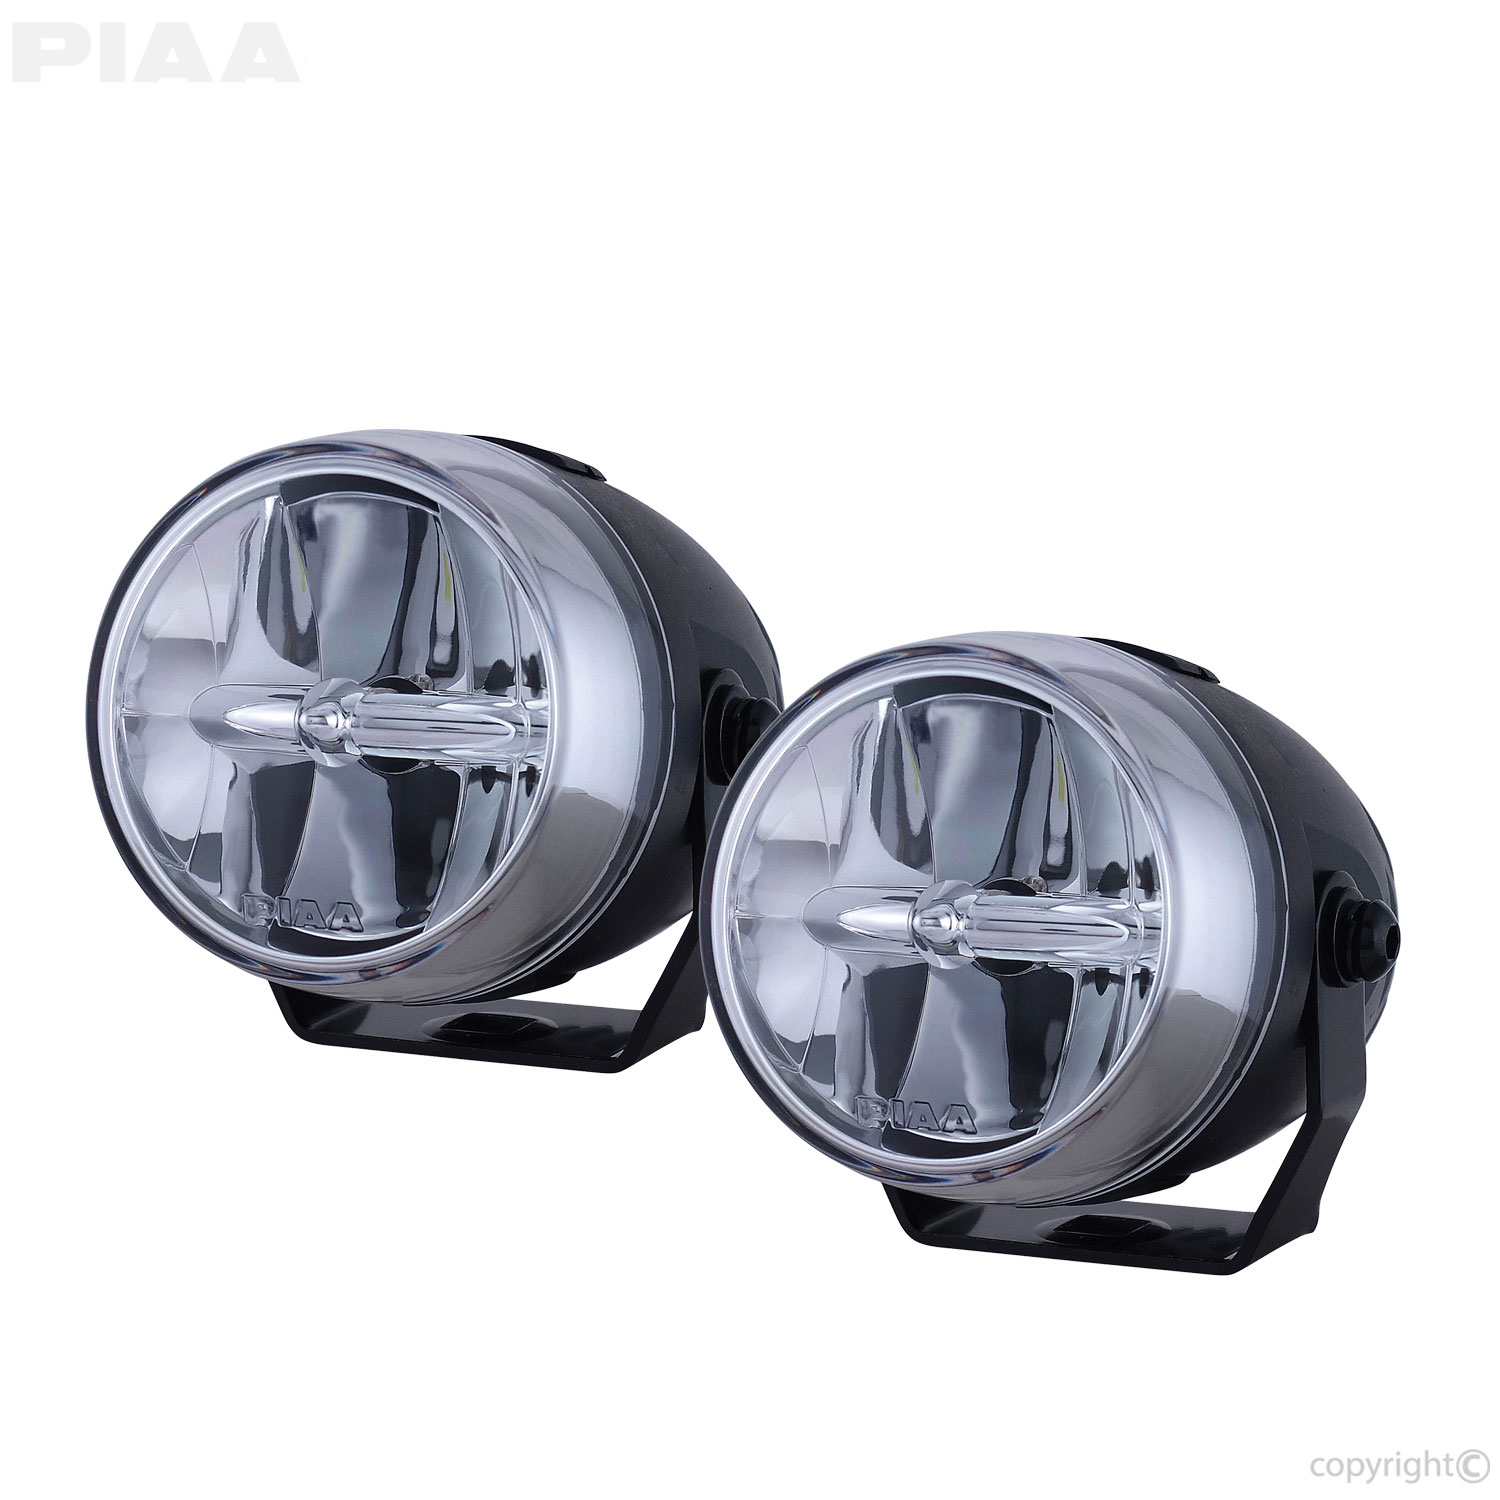 piaa led lights for honda motorcycles 1966 mustang fog lamp wiring harness honda lp270 2 75\